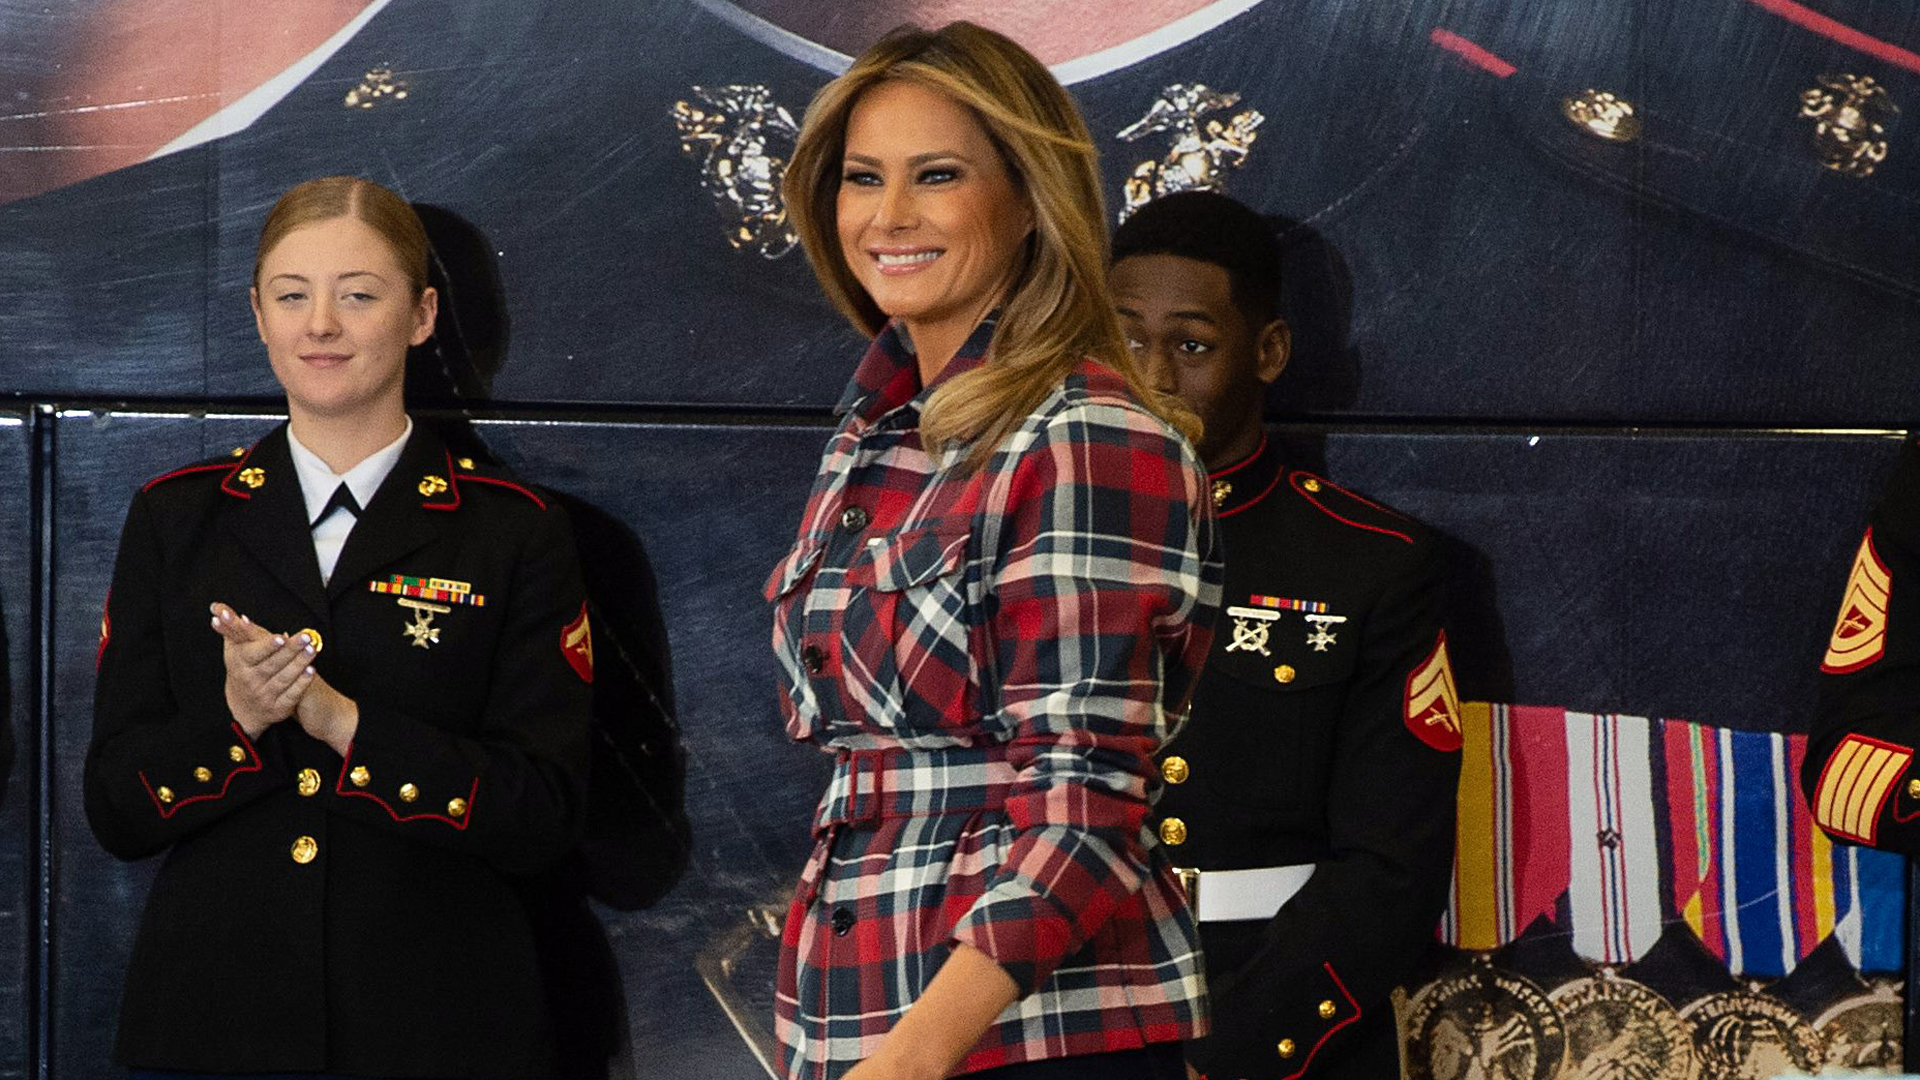 U.S. First Lady Melania Trump attends a Toys for Tots event at Joint Base Anacostia-Bolling in Washington, D.C., on Dec. 11, 2018. (Credit: NICHOLAS KAMM/AFP/Getty Images)